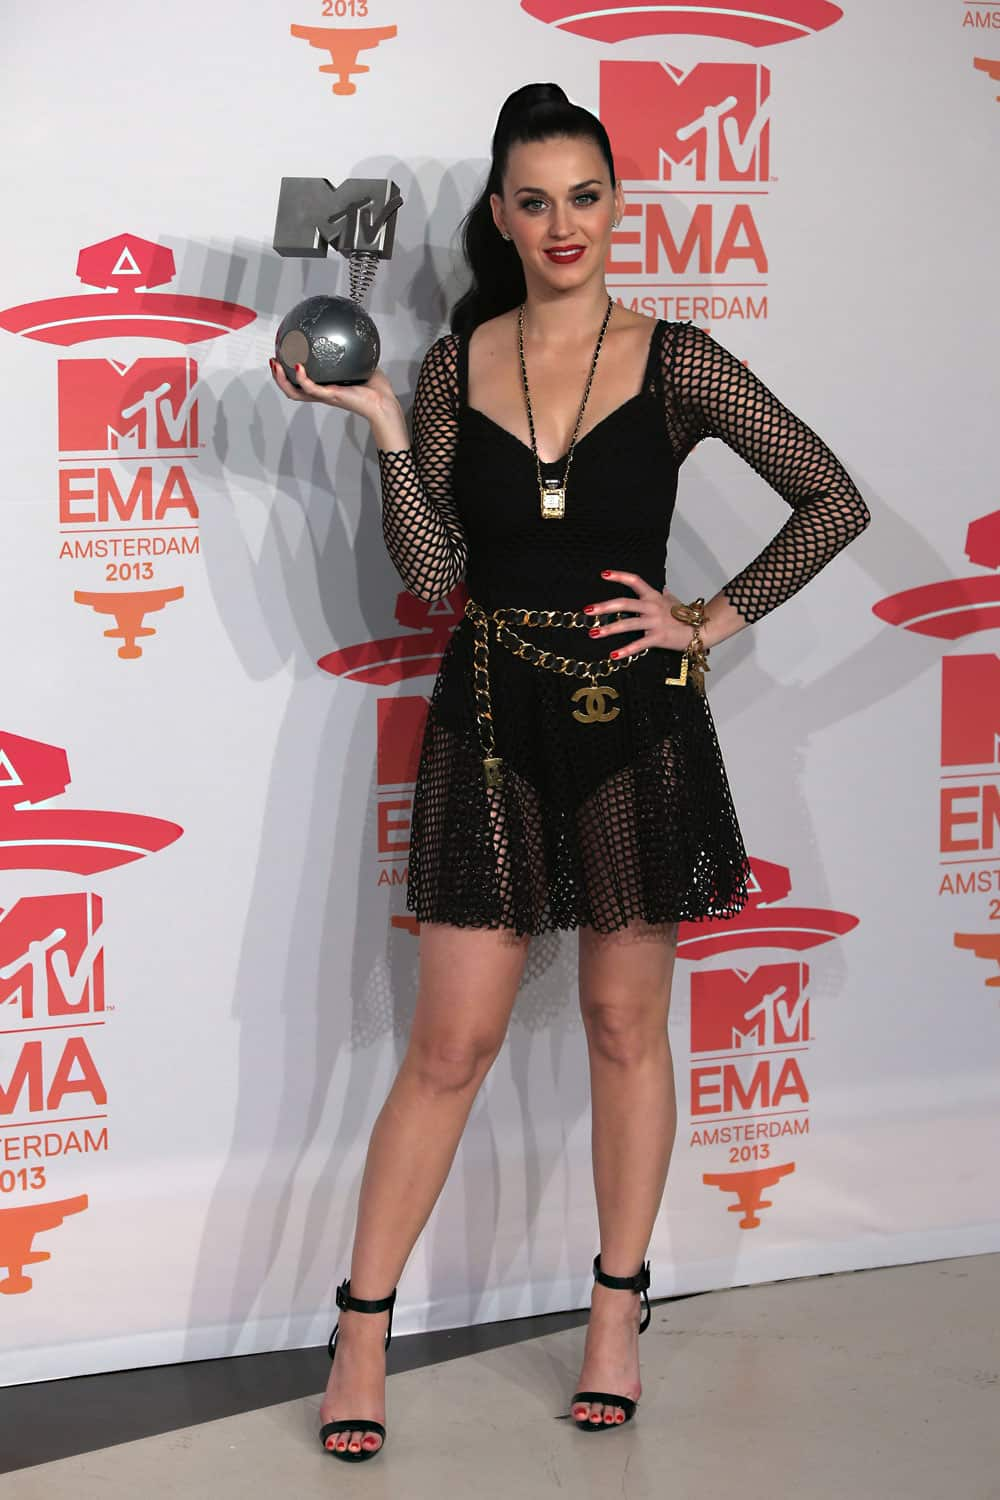 Katy Perry poses for photographers backstage with her award for Best Female at the 2013 MTV Europe Music Awards, in Amsterdam.